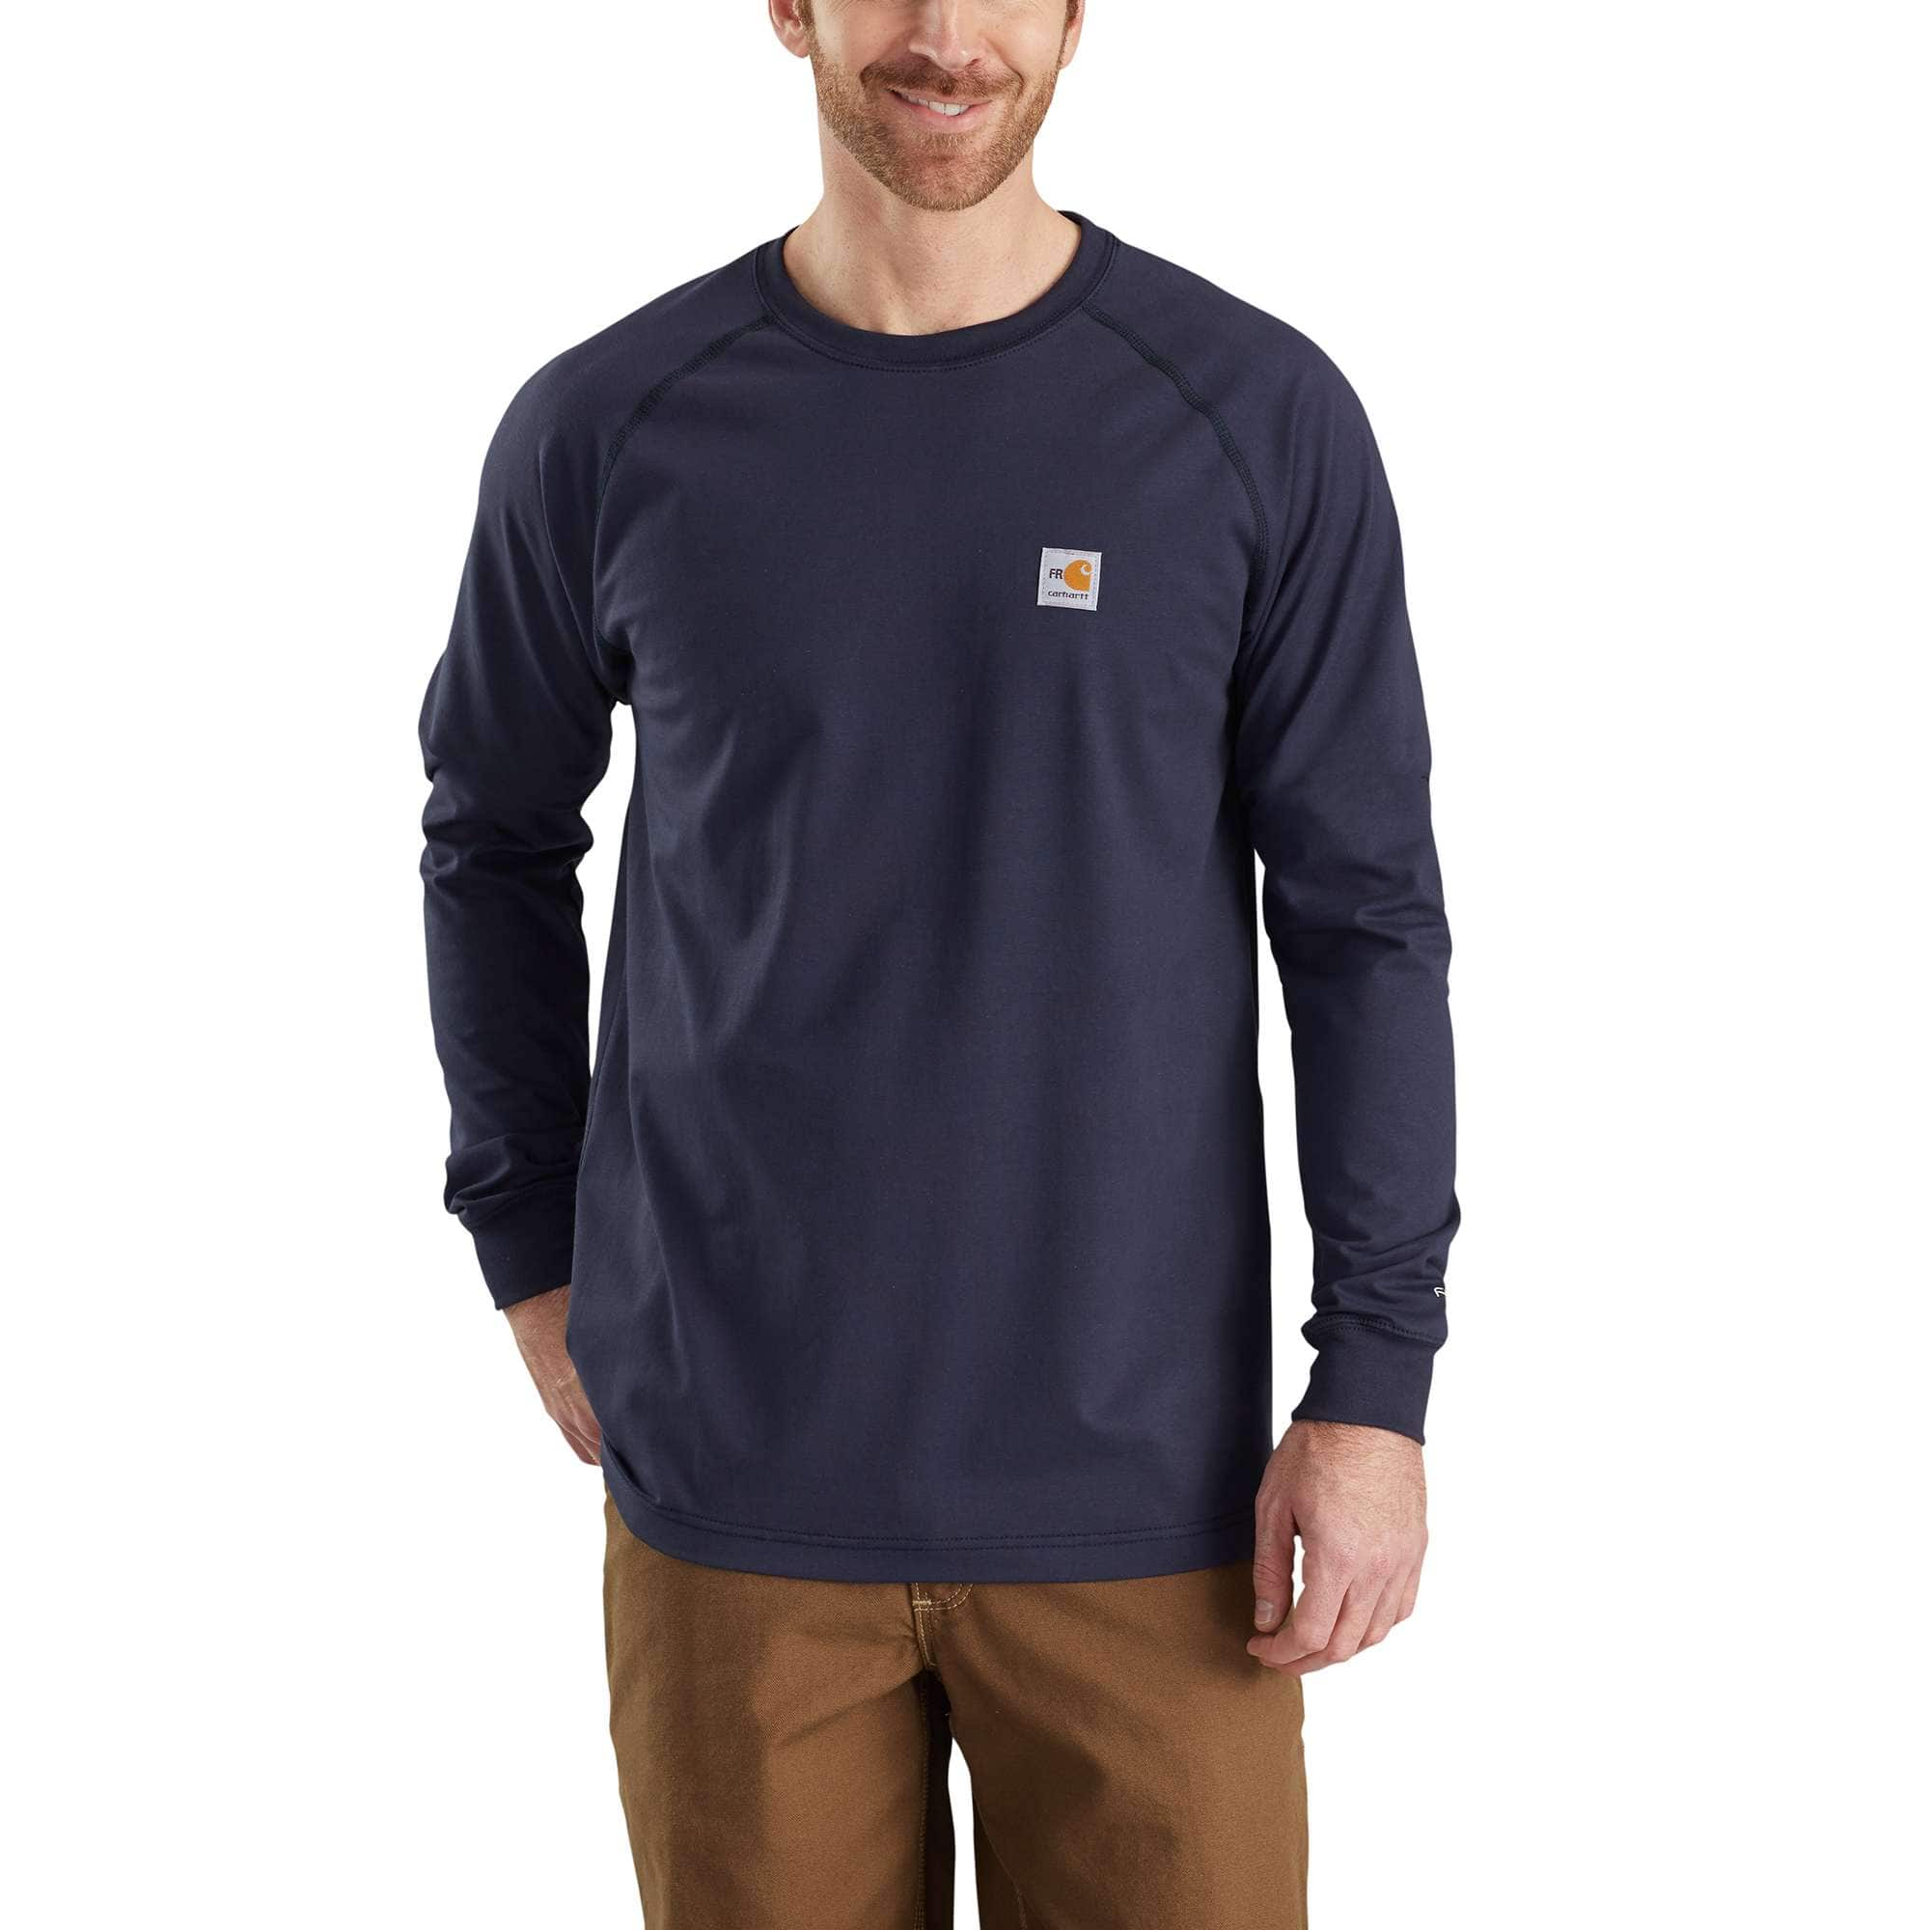 Carhartt Mens Flame Resistant Force Cotton Long Sleeve T-Shirt